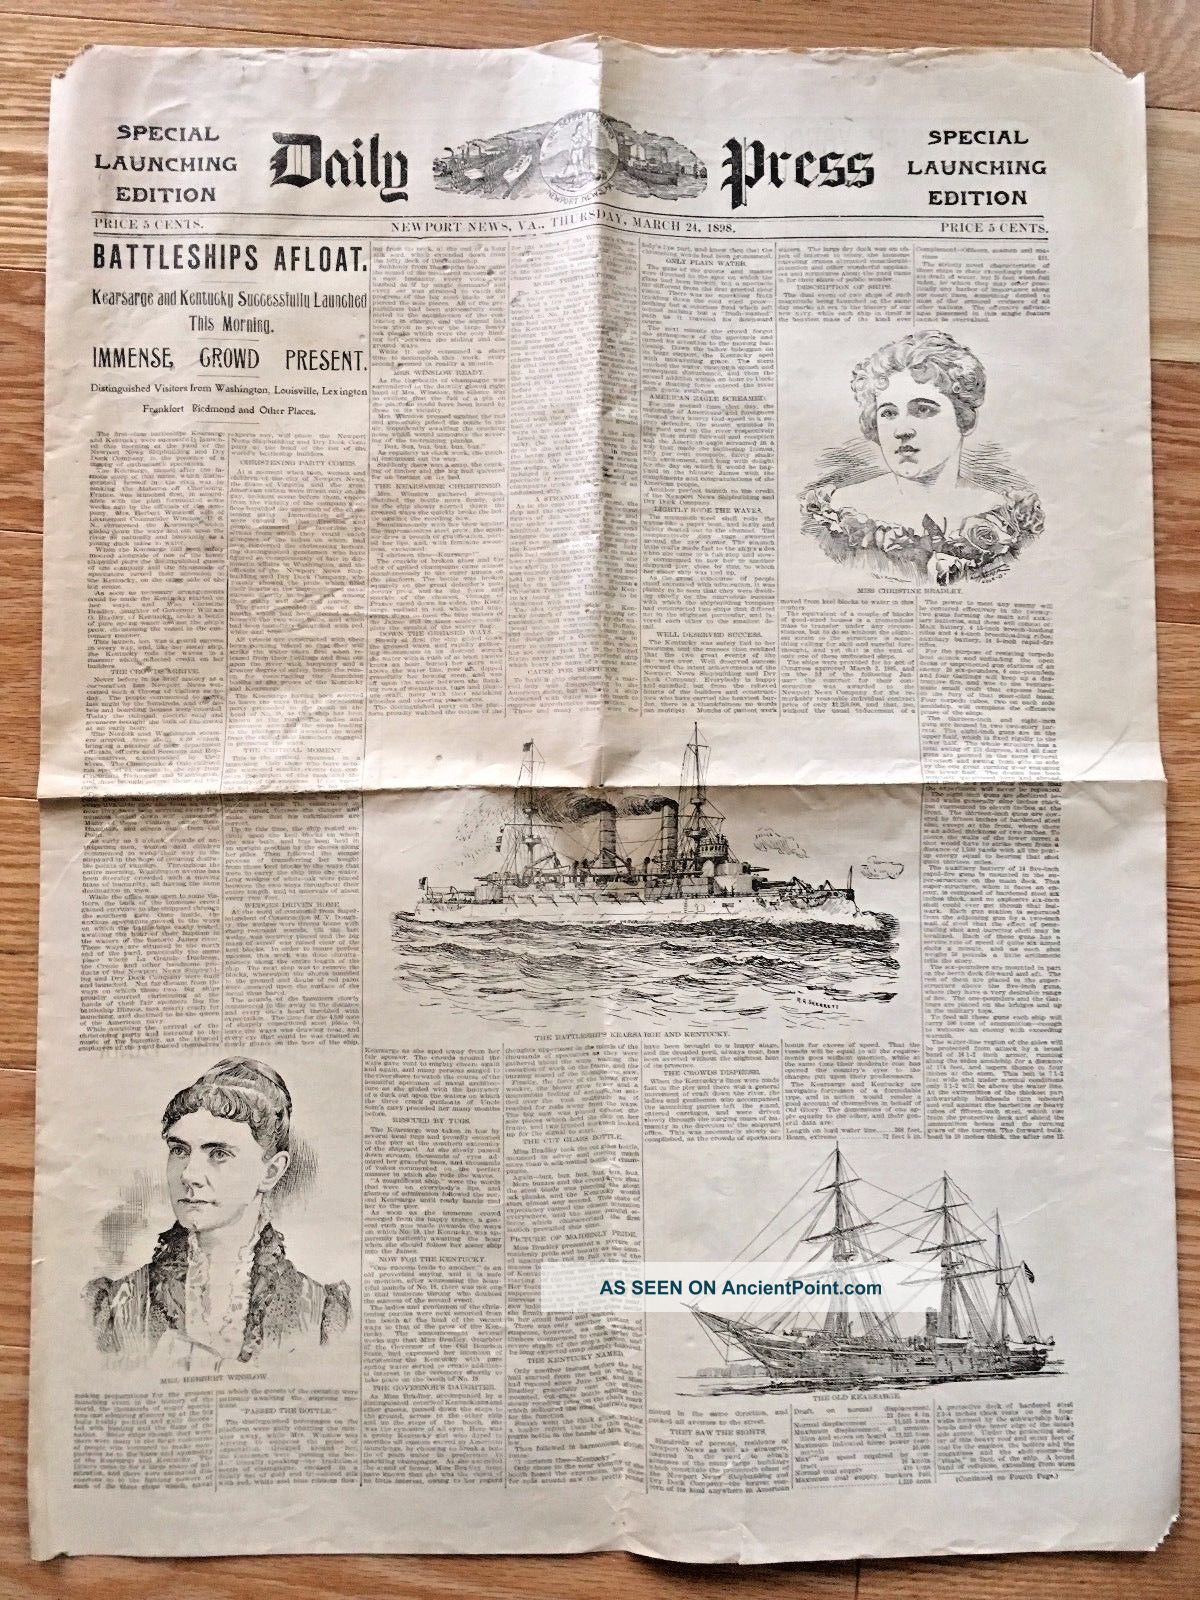 Newport News Va 1898 Newspaper Launching Uss Kearsarge Ship Yard Special Ed. Other Maritime Antiques photo